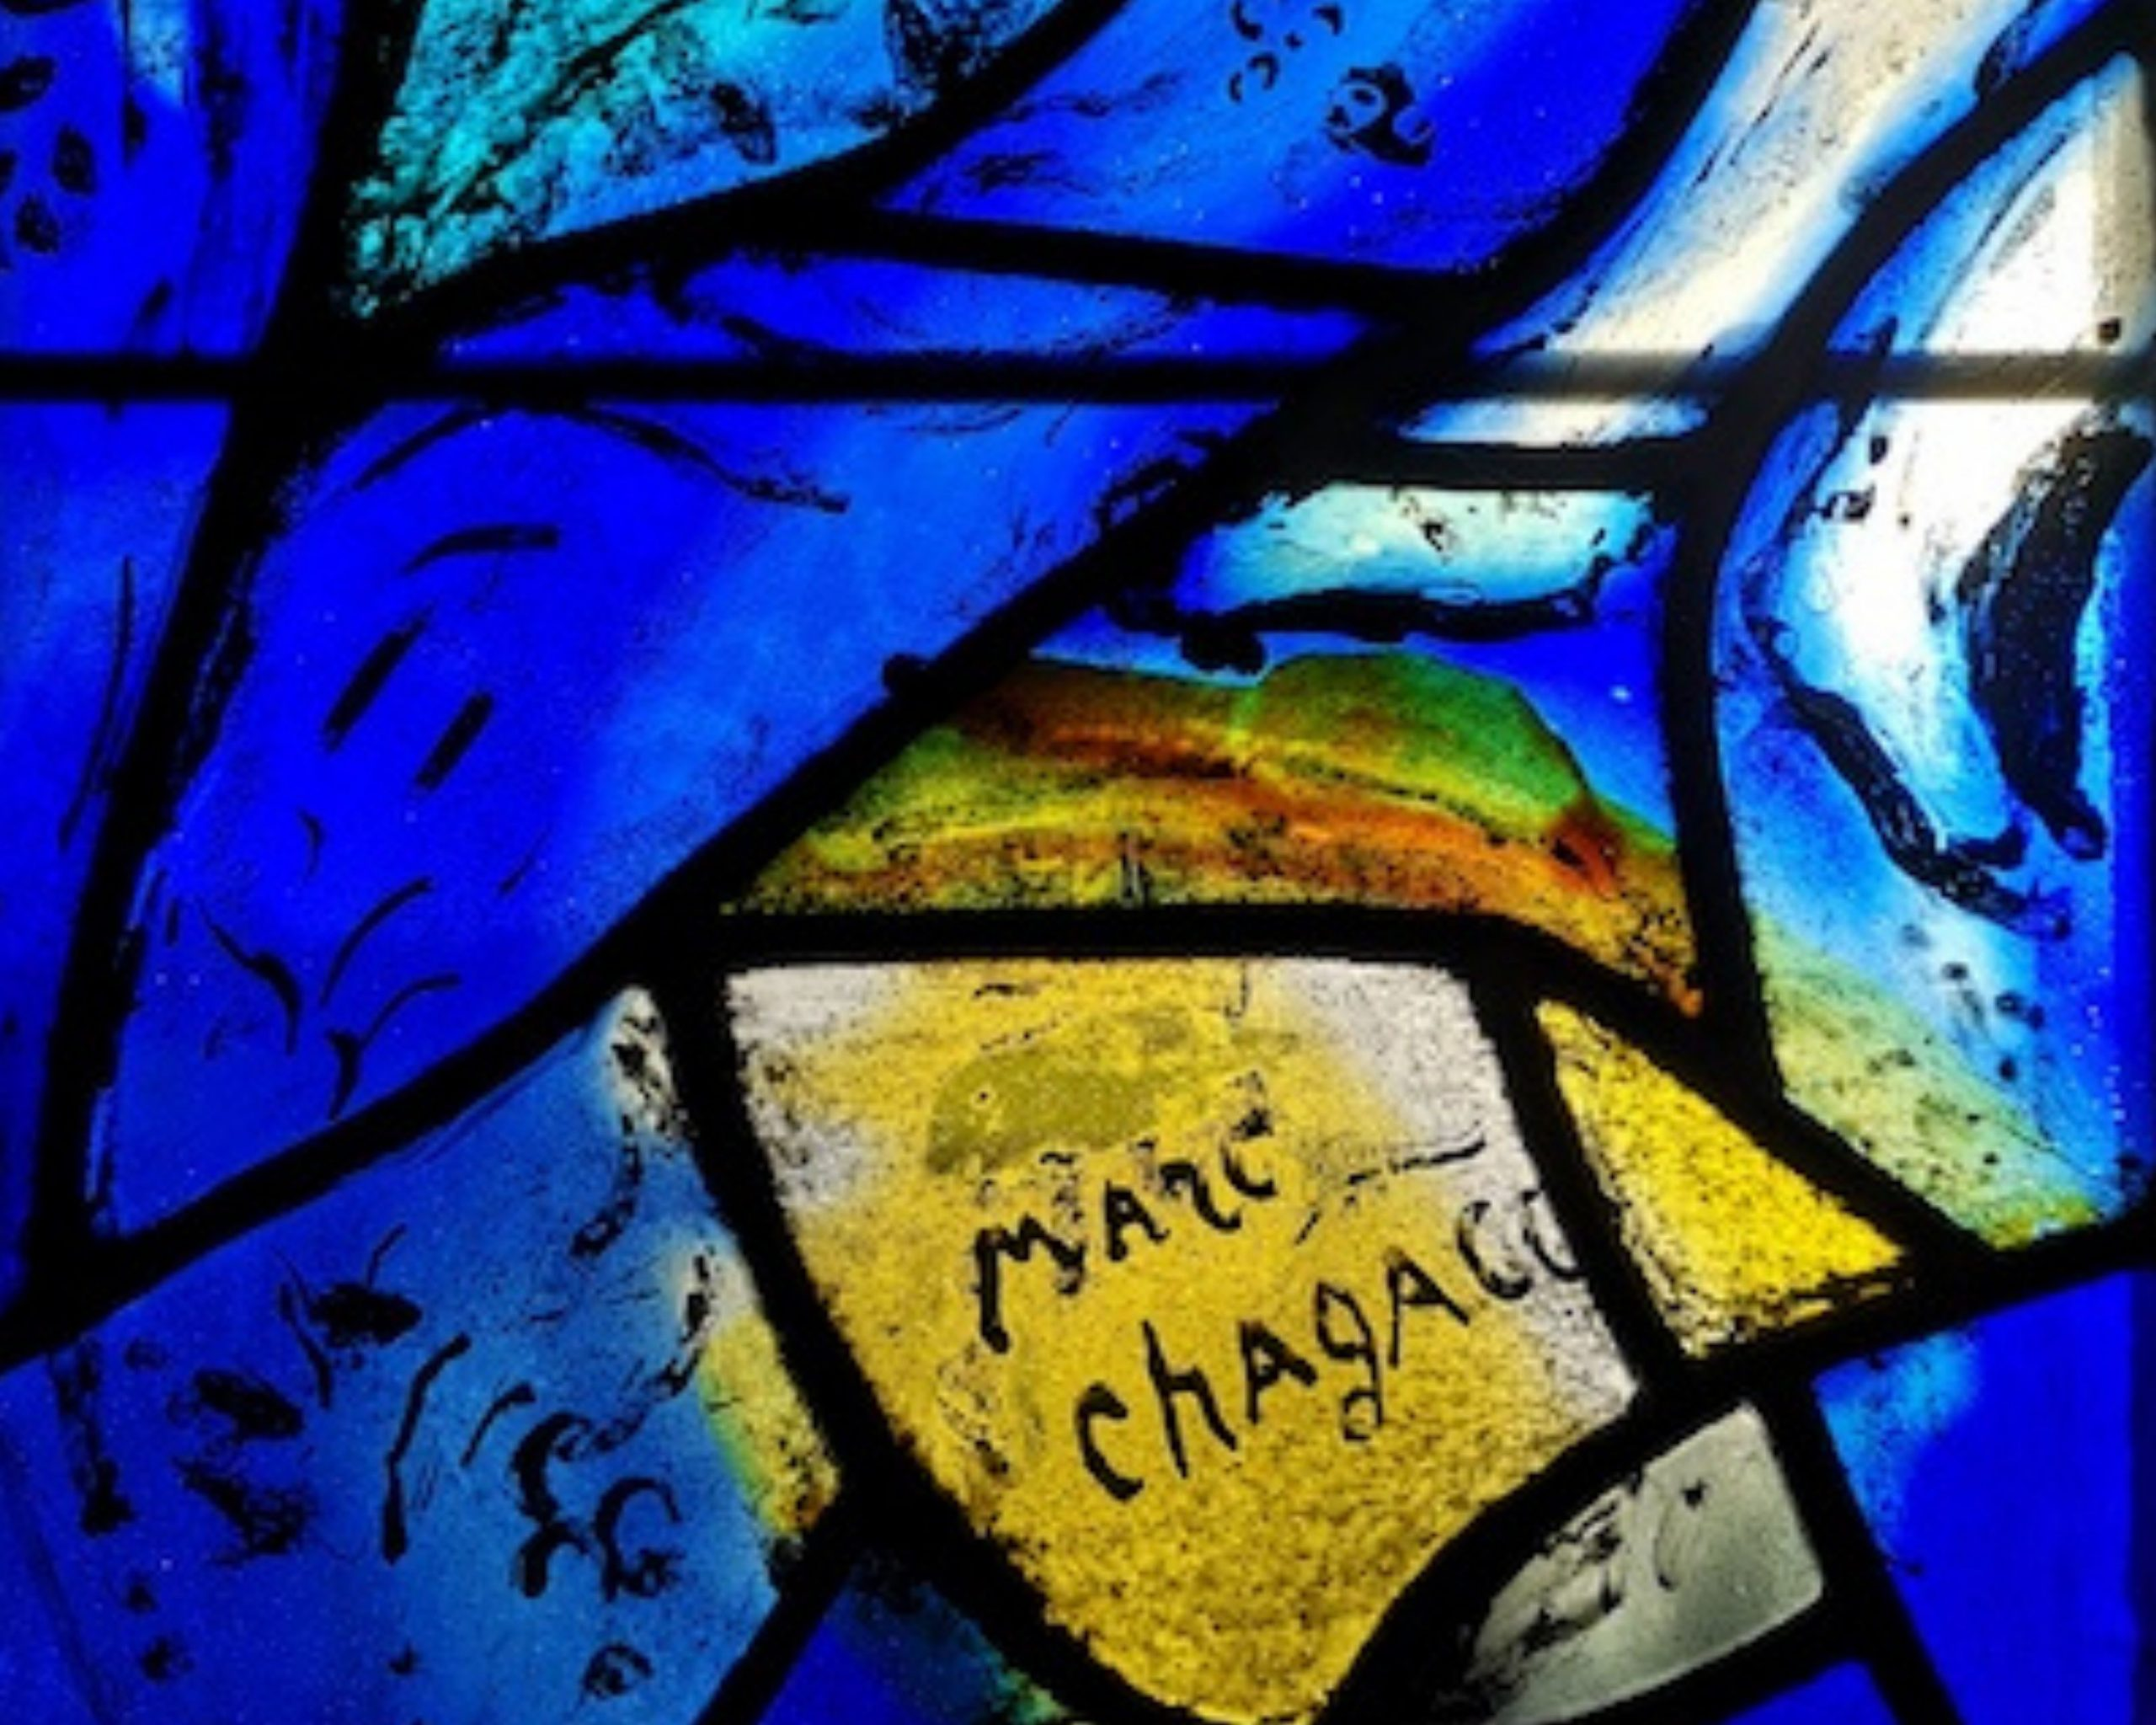 Marc Chagall signature on stained glass window